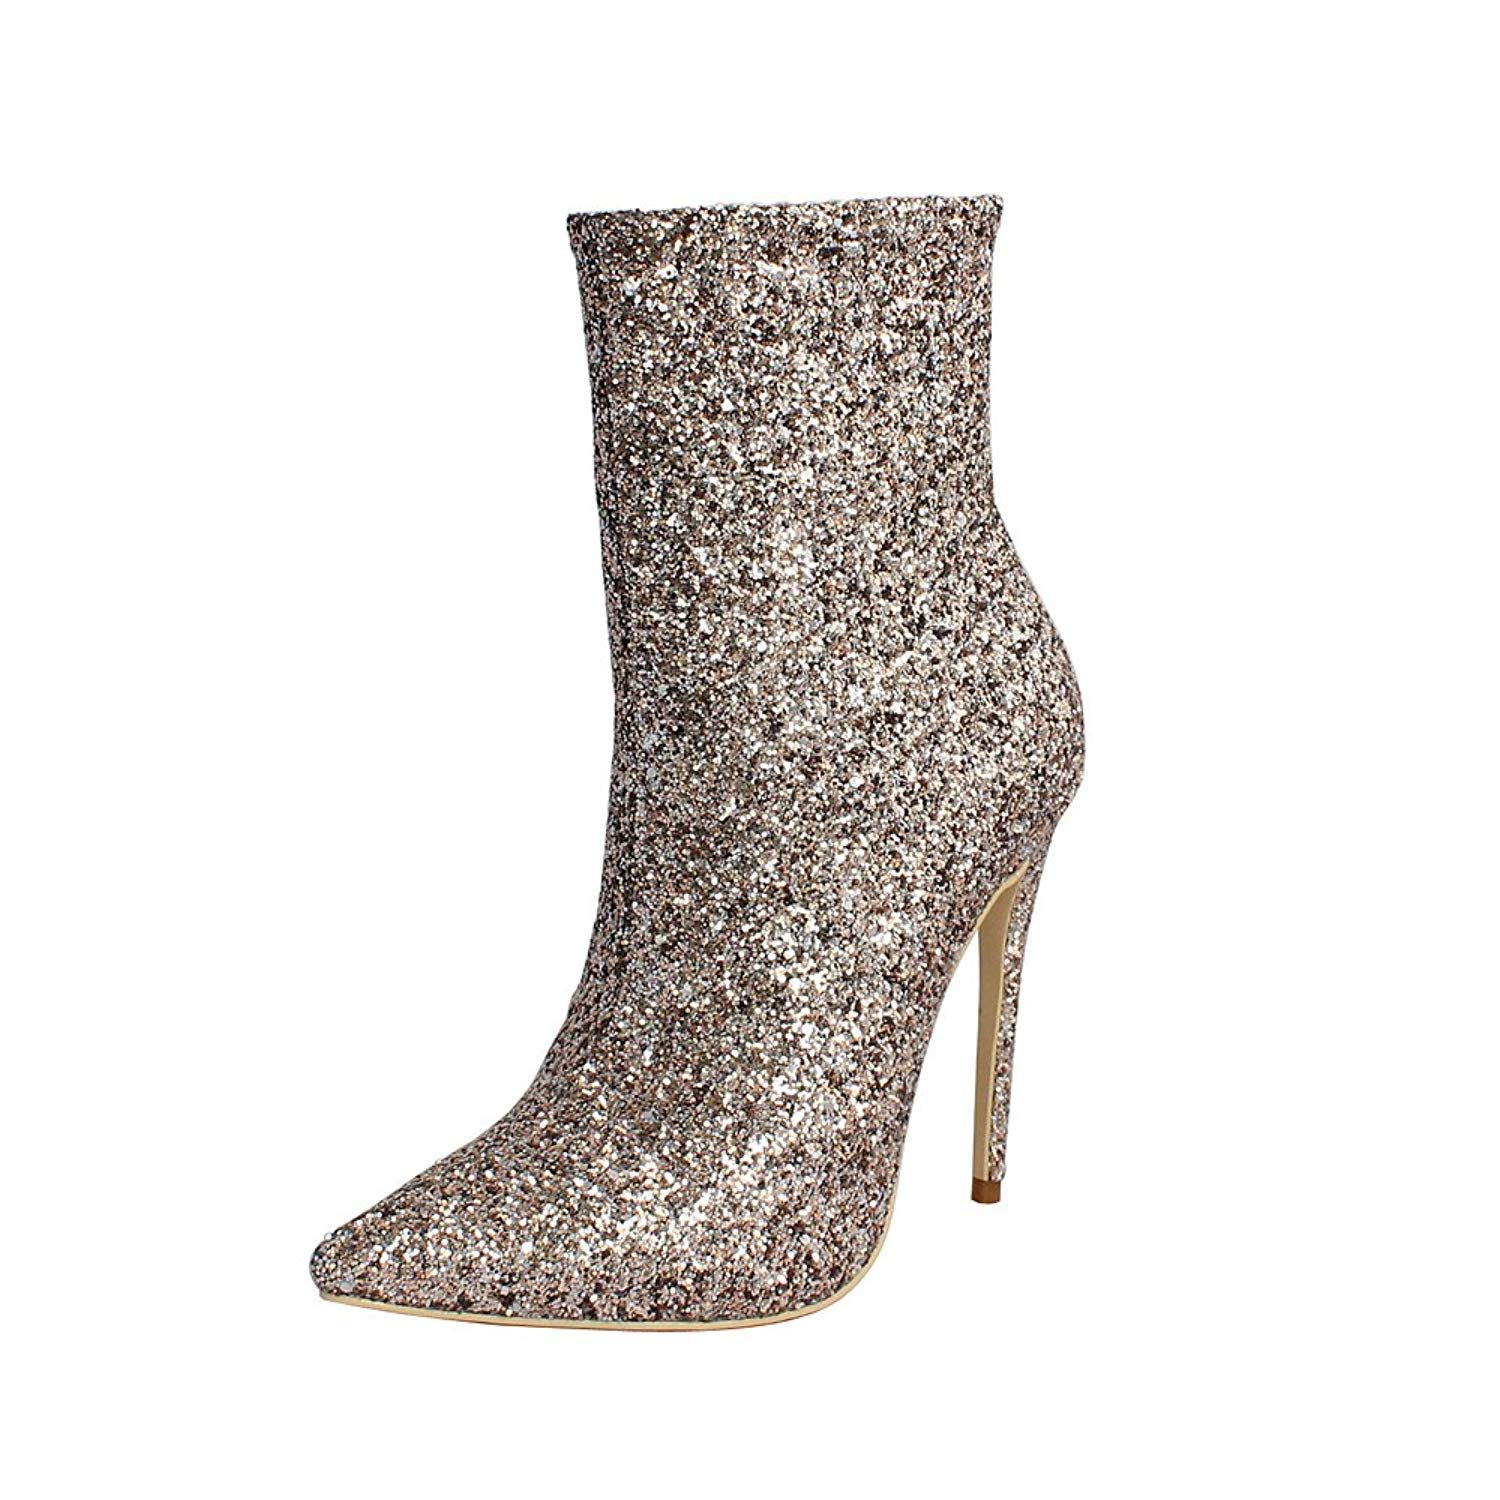 9ee692b82891 12CM High Heel Women Boots Plus Size Shoes Women Sequins Boots Wedding  Party Pointed Toe Ankle Boots. Item Specifics. Women s Shoes